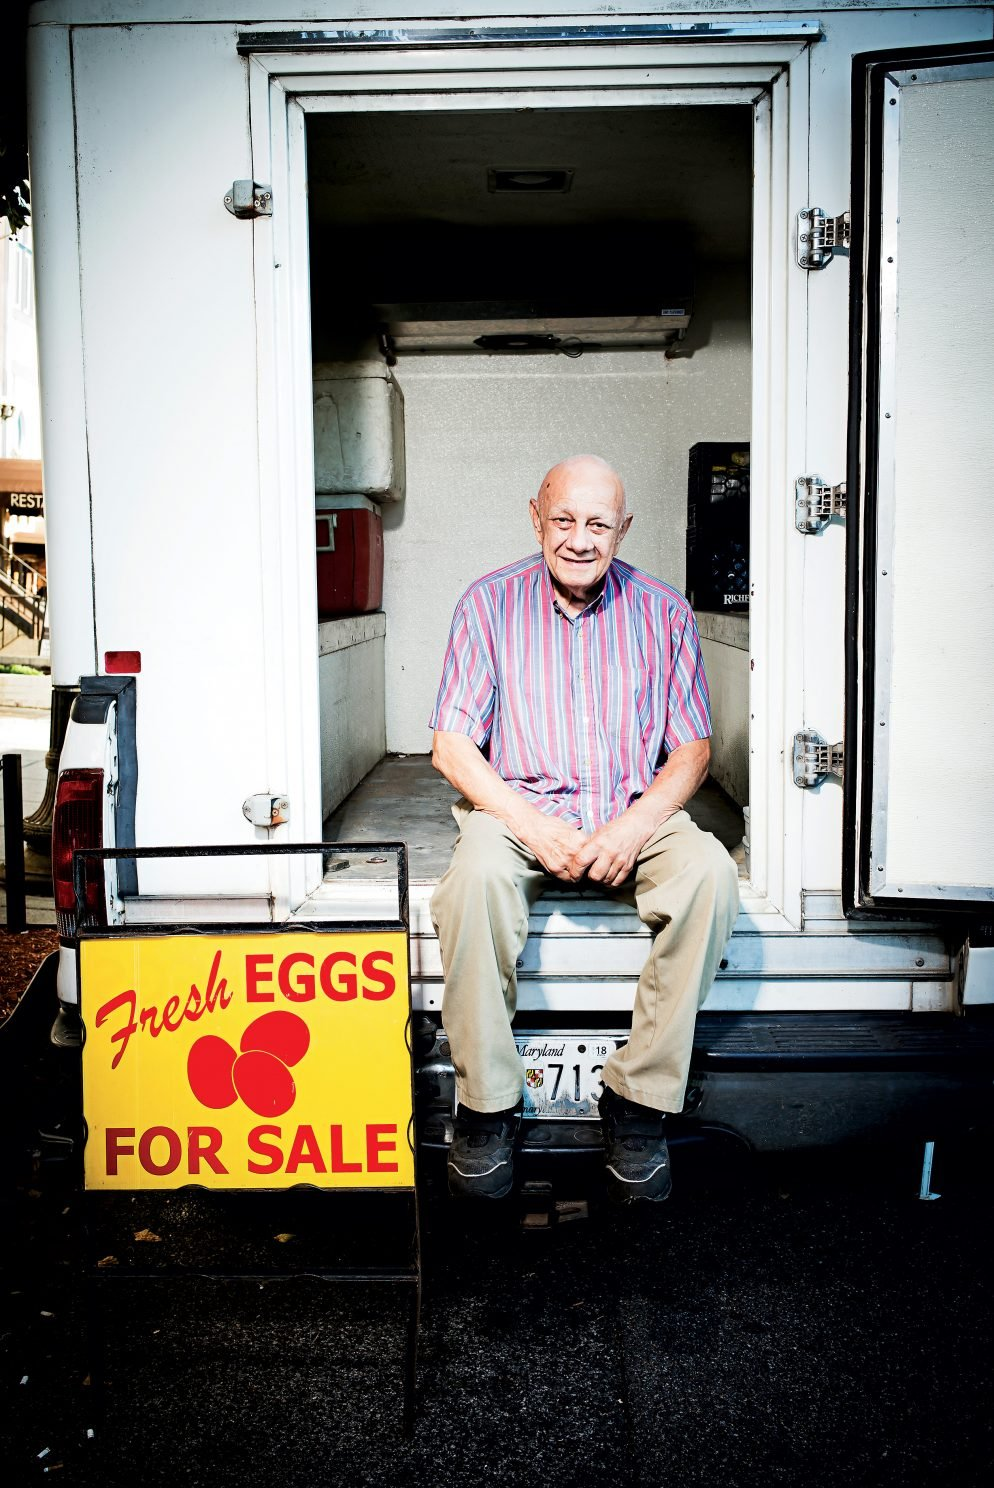 Tom the Egg Man Is Our Favorite Face at the Farmers Market